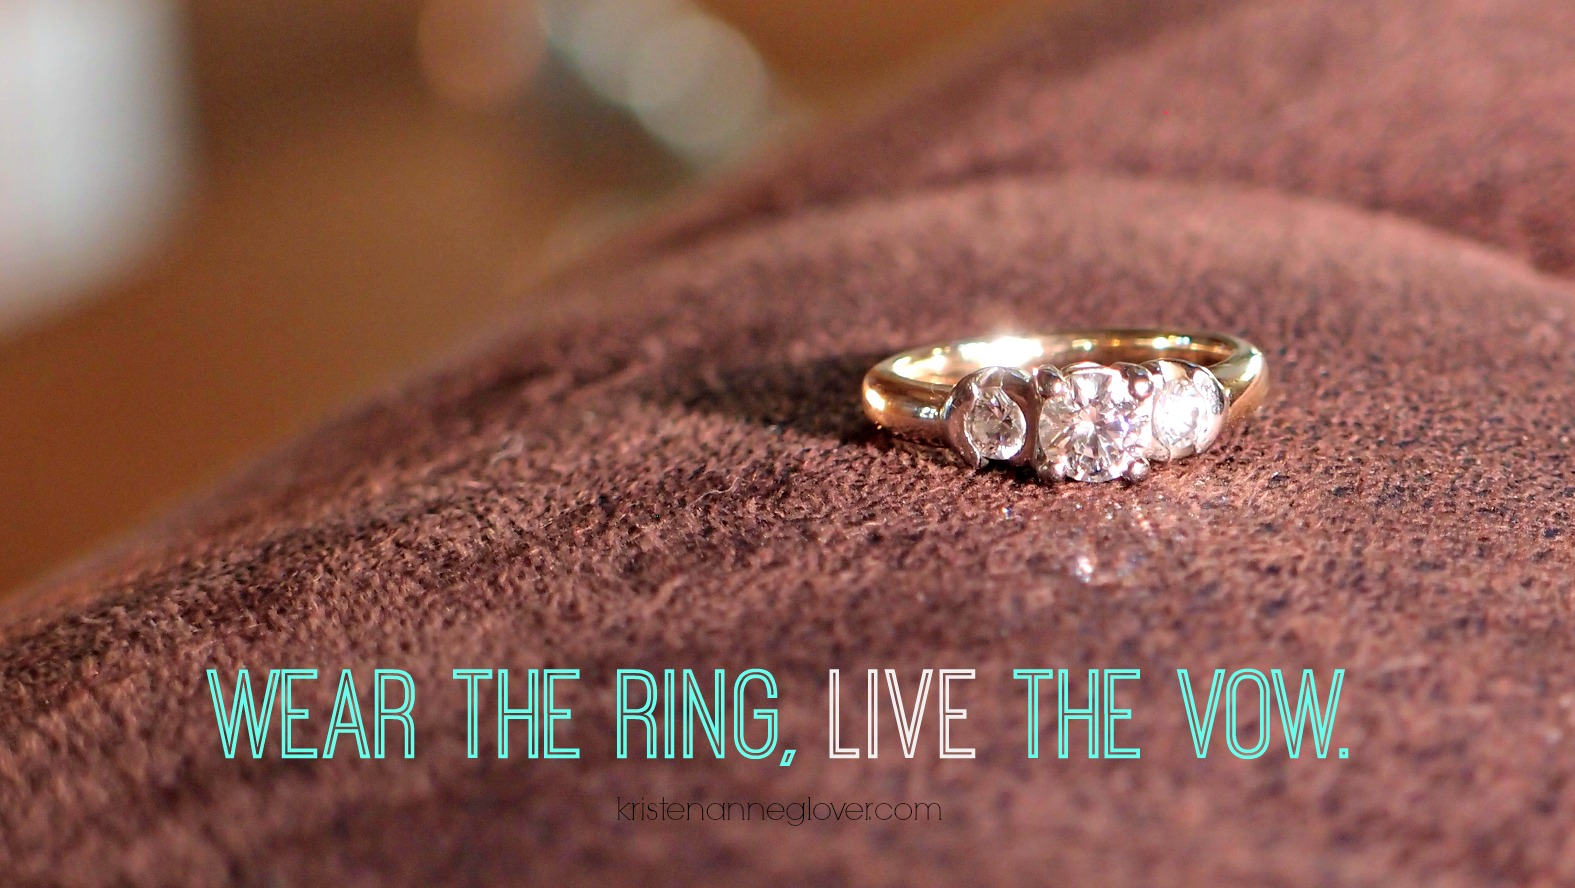 Why I Stopped Wearing My Wedding Ring Kristen Anne Glover